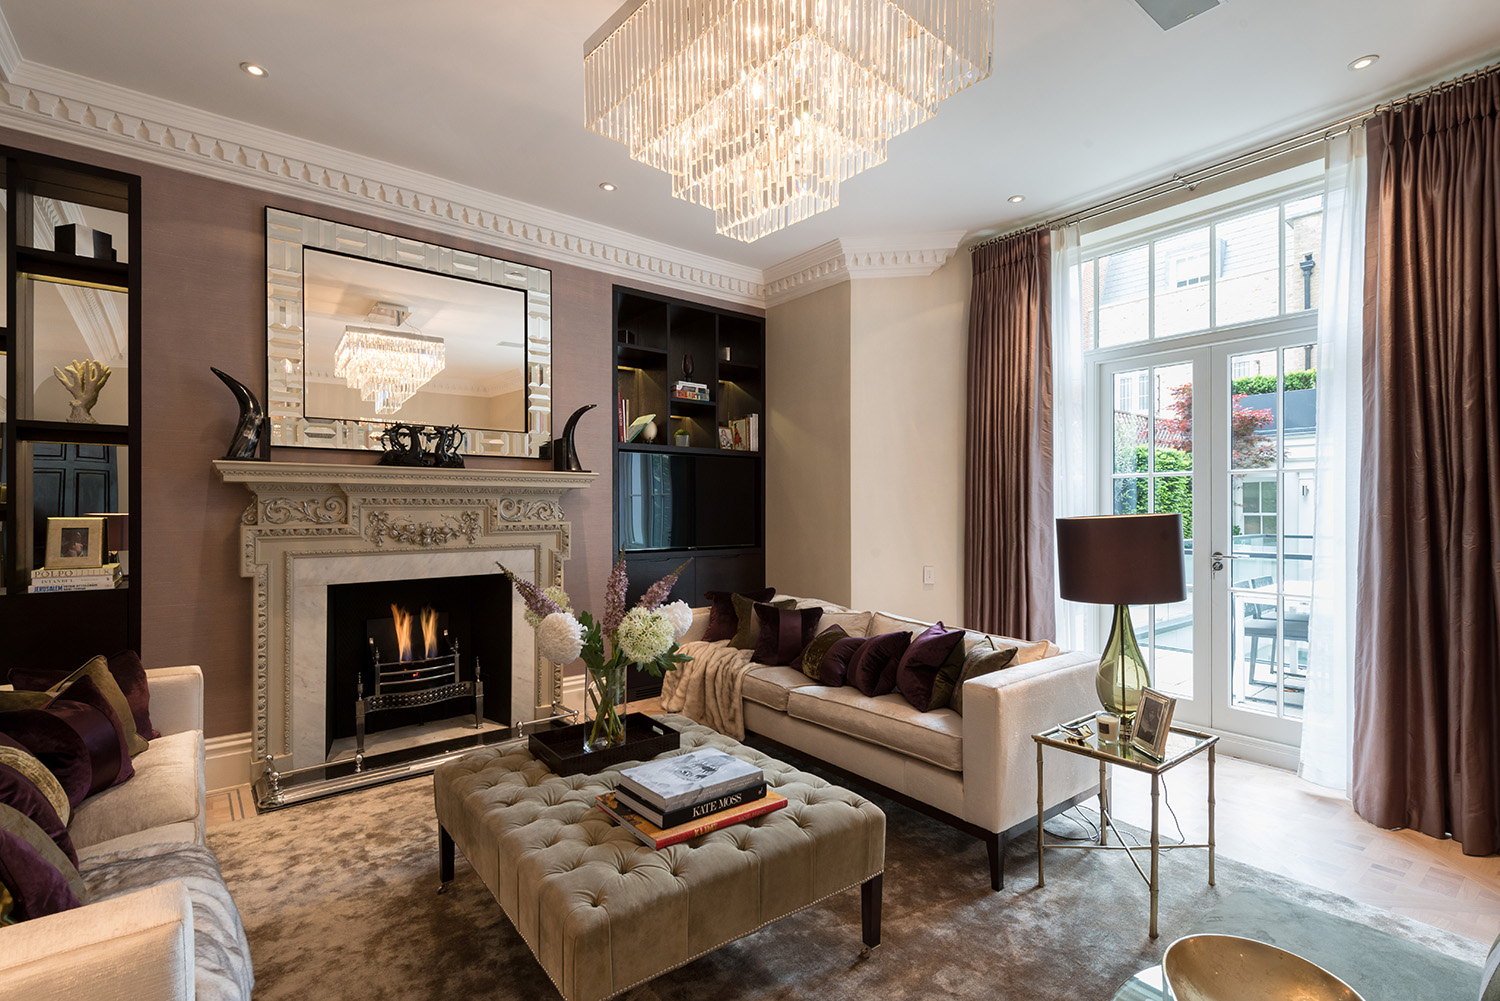 Interior Design London Of Mayfair Family Home W1 Design Box London Luxury